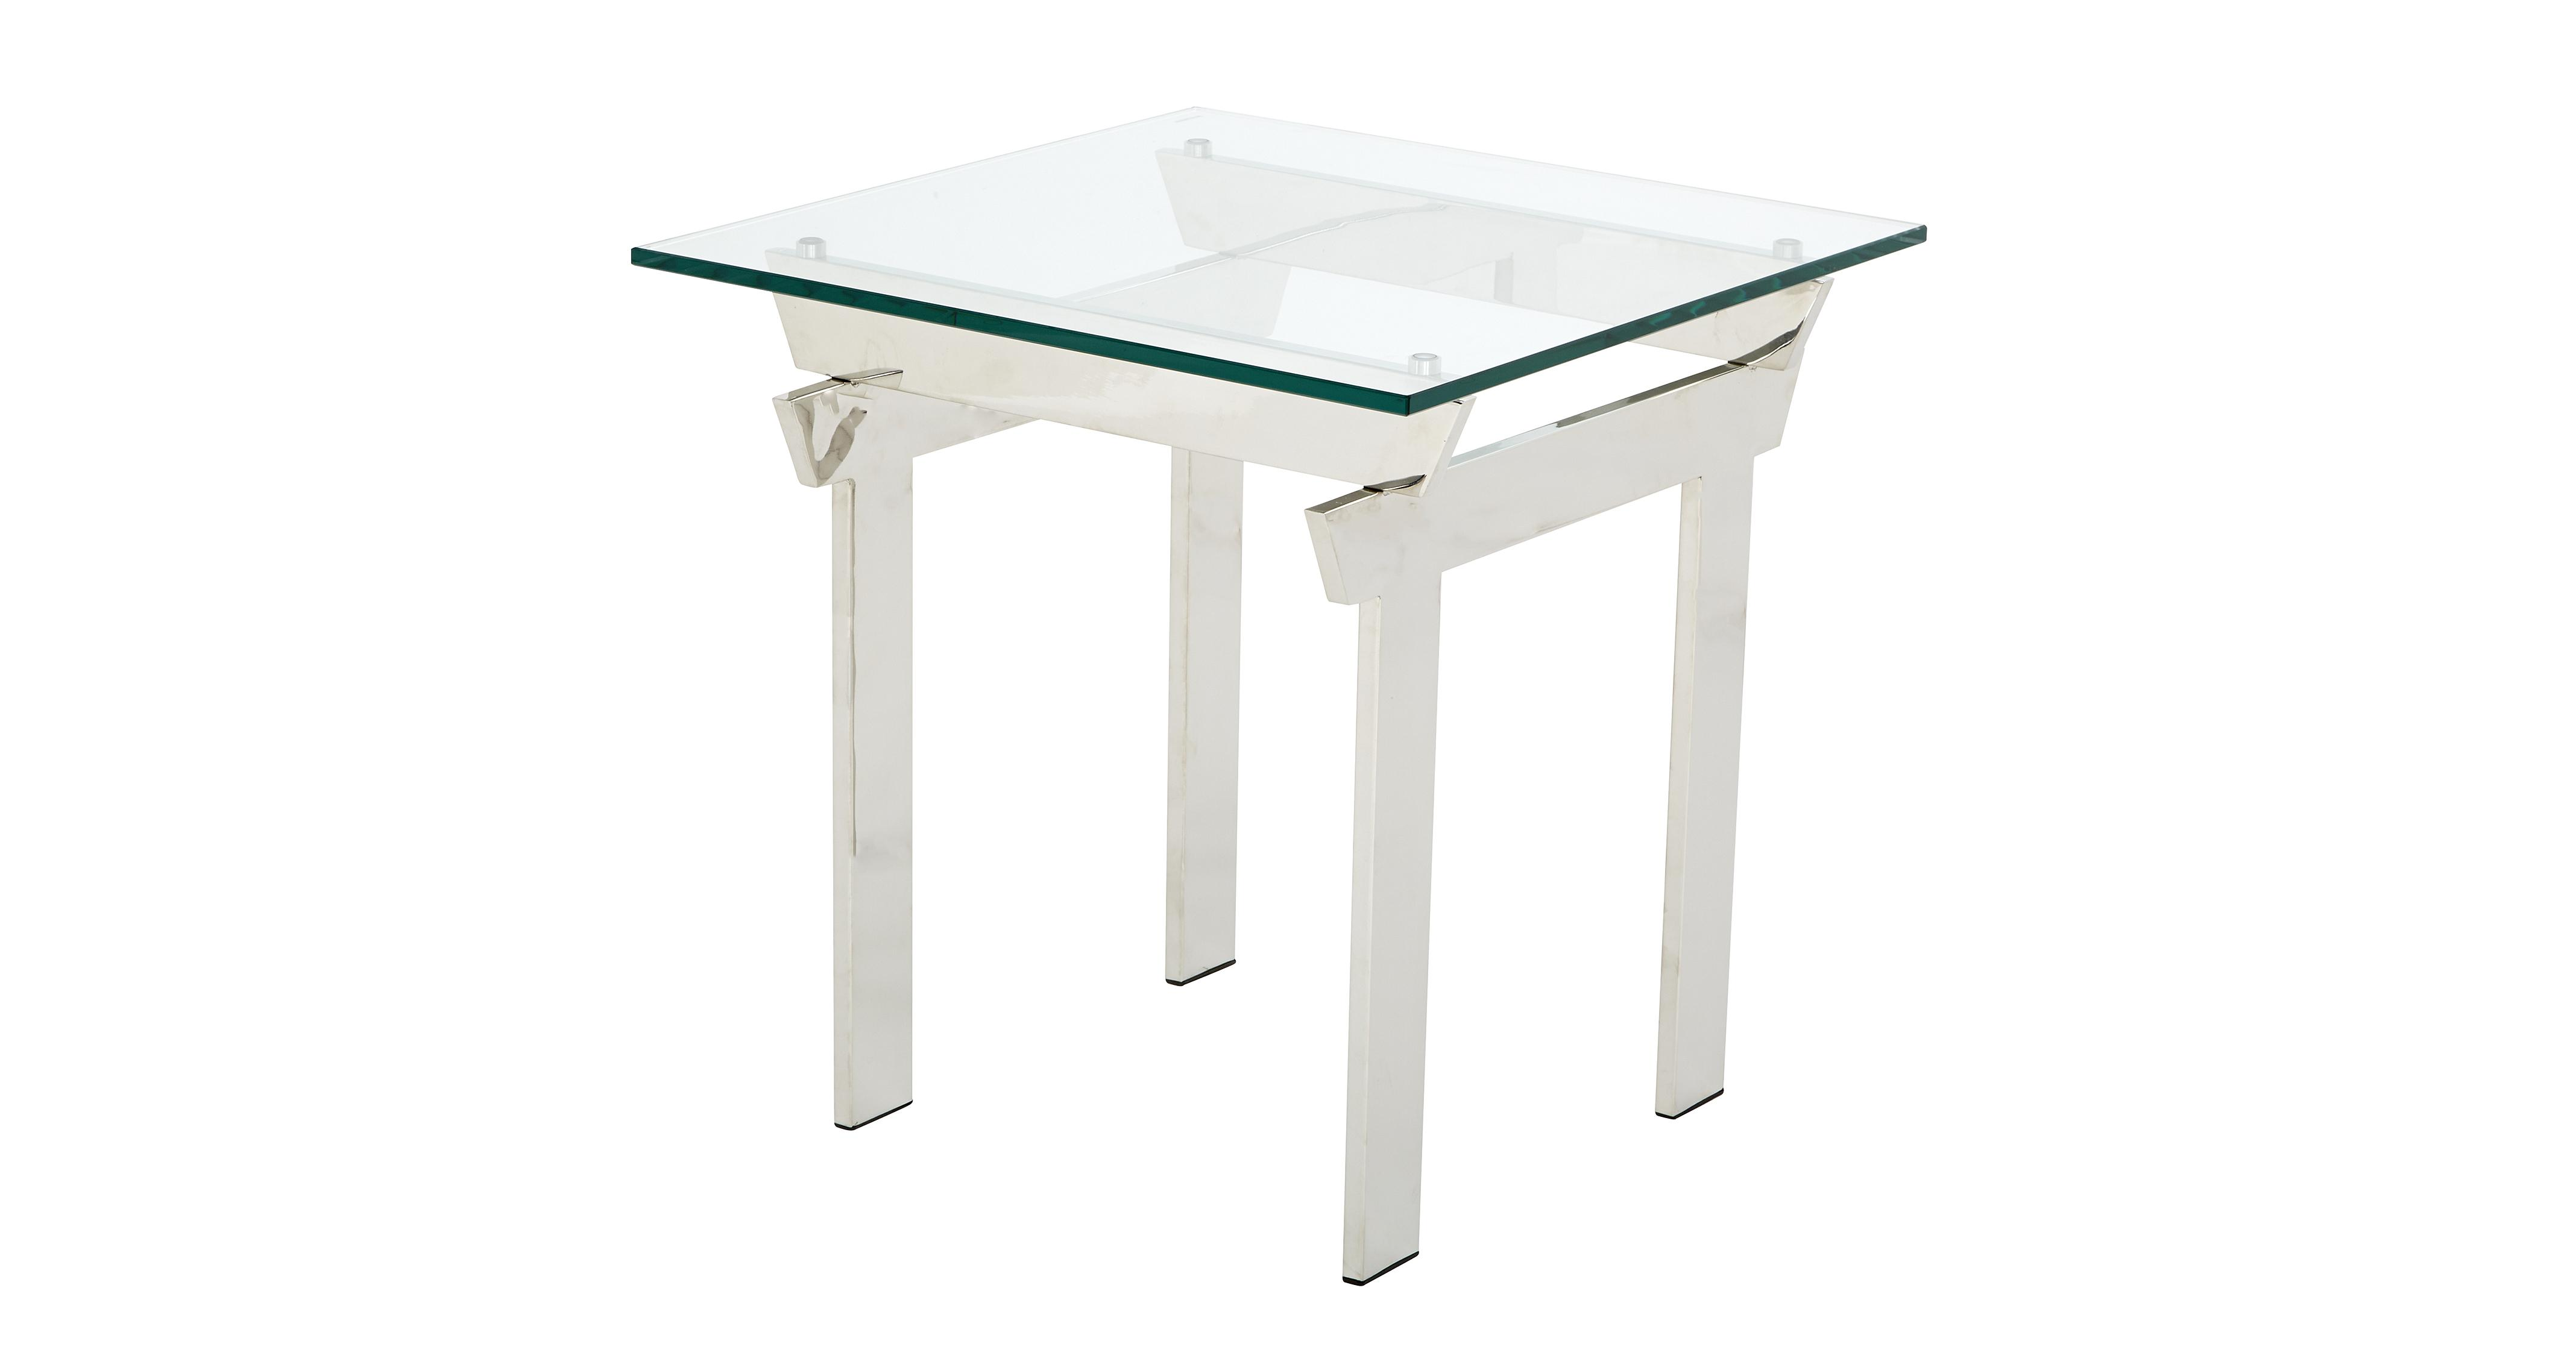 Pagoda lamp table polished steel and glass dfs for Lamp table dfs